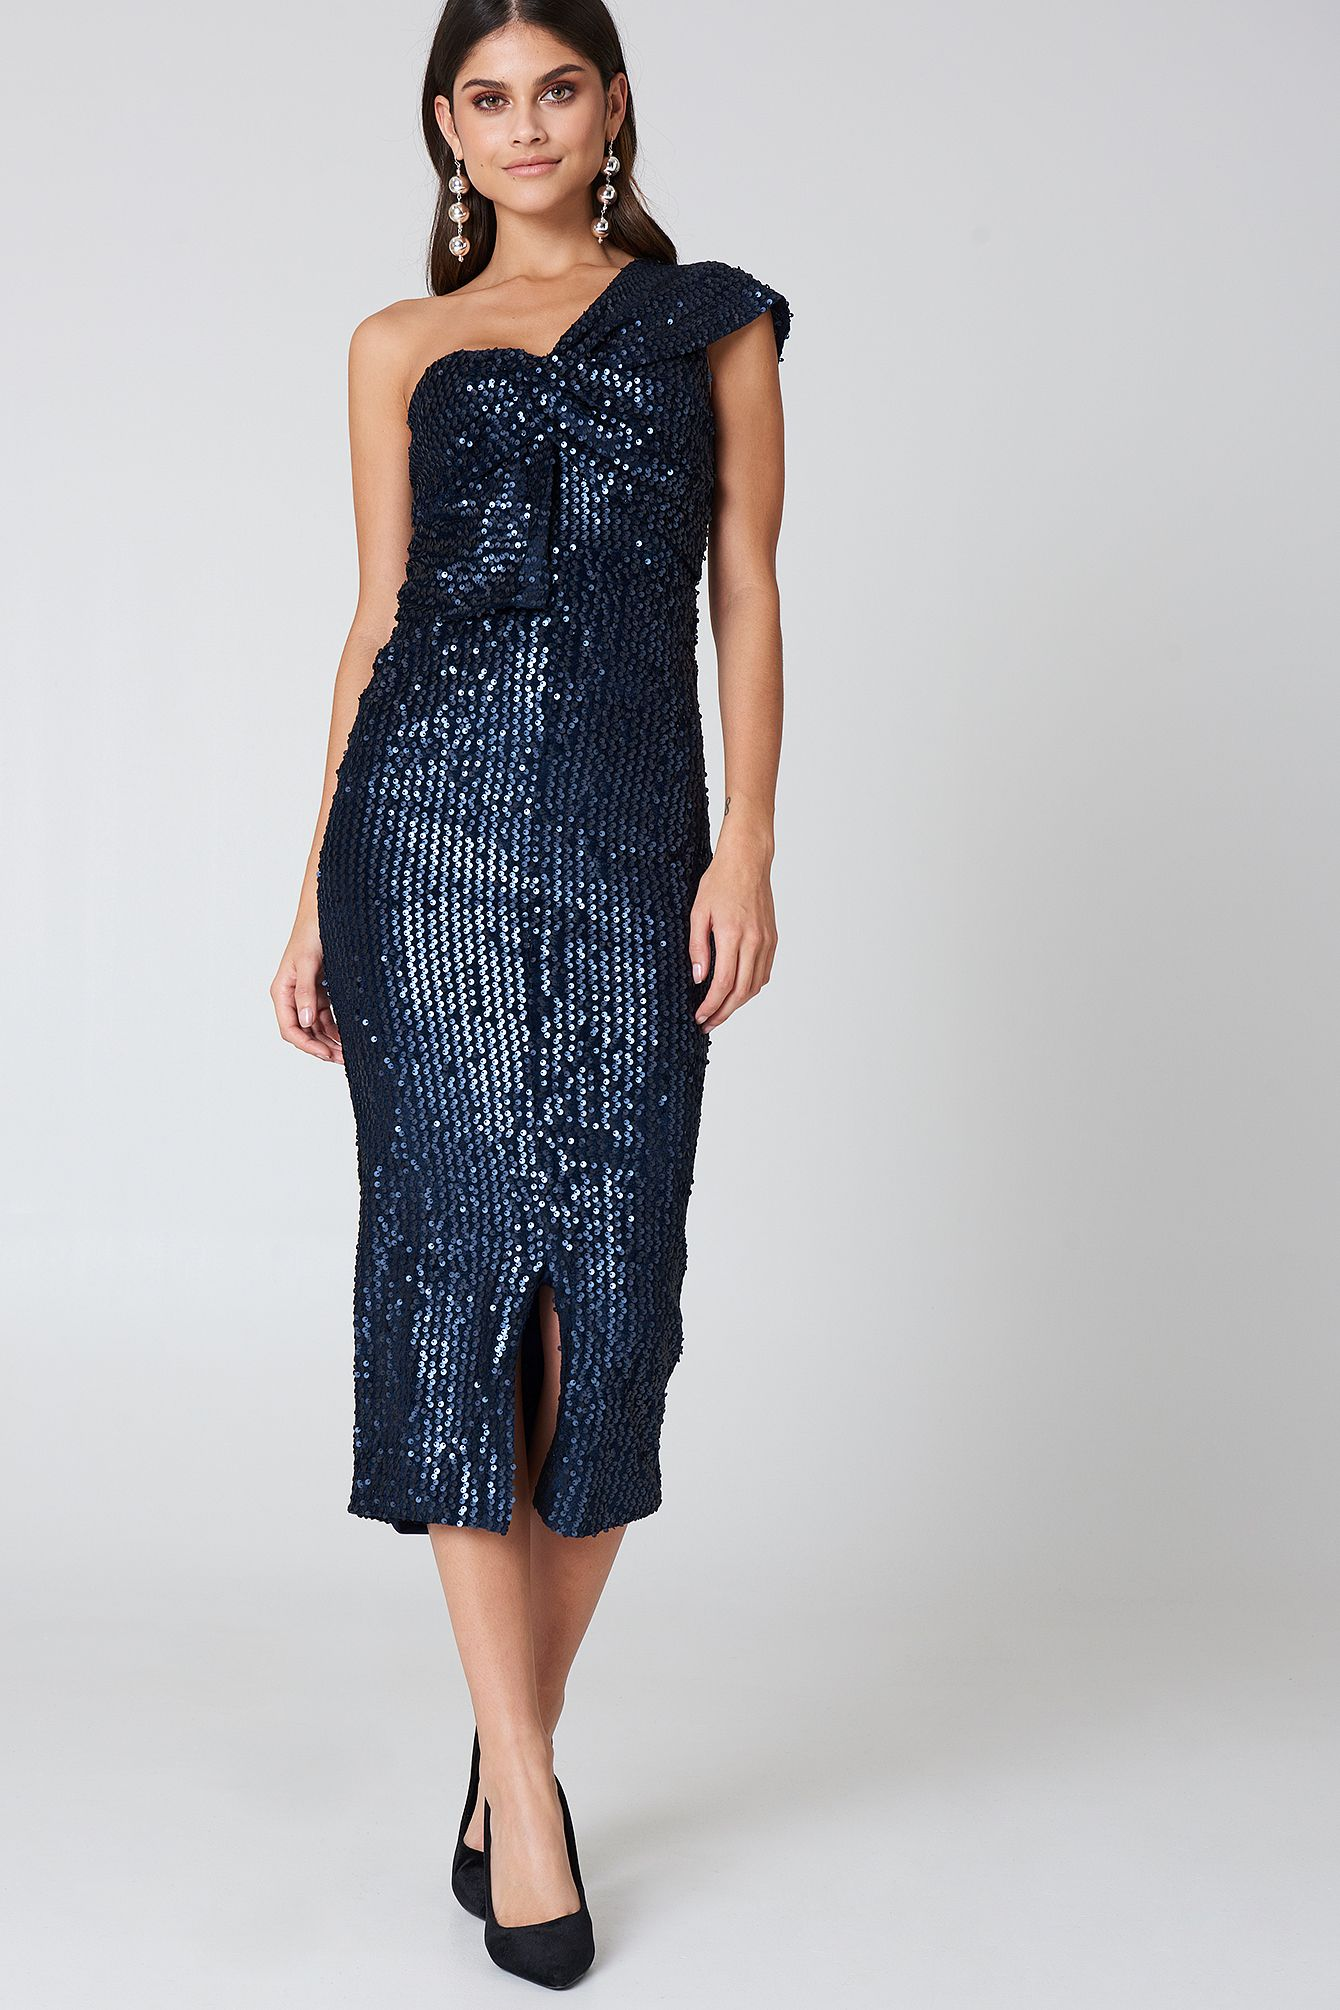 Sequin Navy dress pictures forecasting to wear for spring in 2019